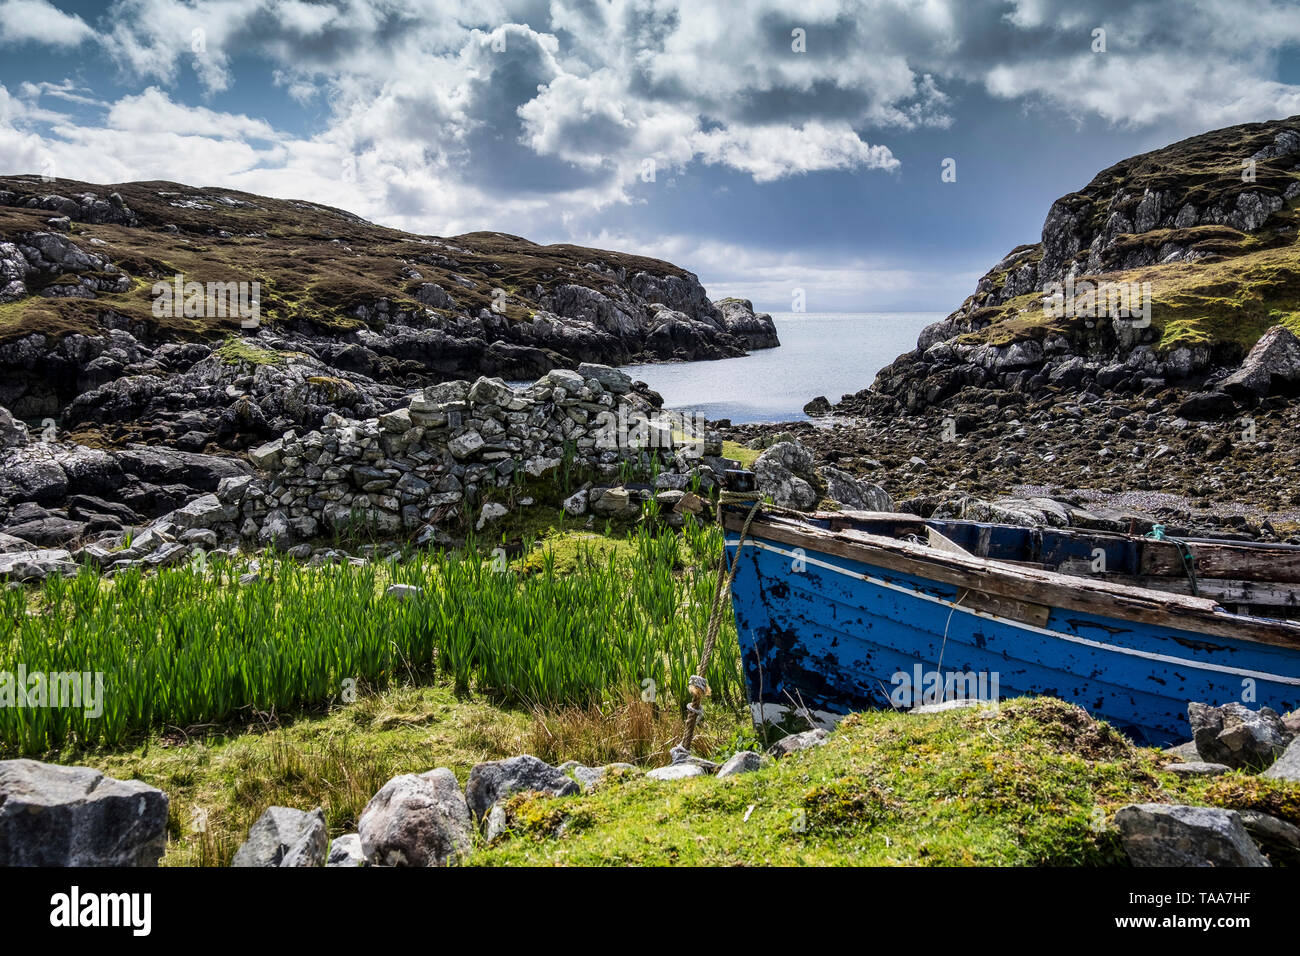 Dramatic light with crofters clinker-built fishing boat, Lingerbay, Harris - Stock Image